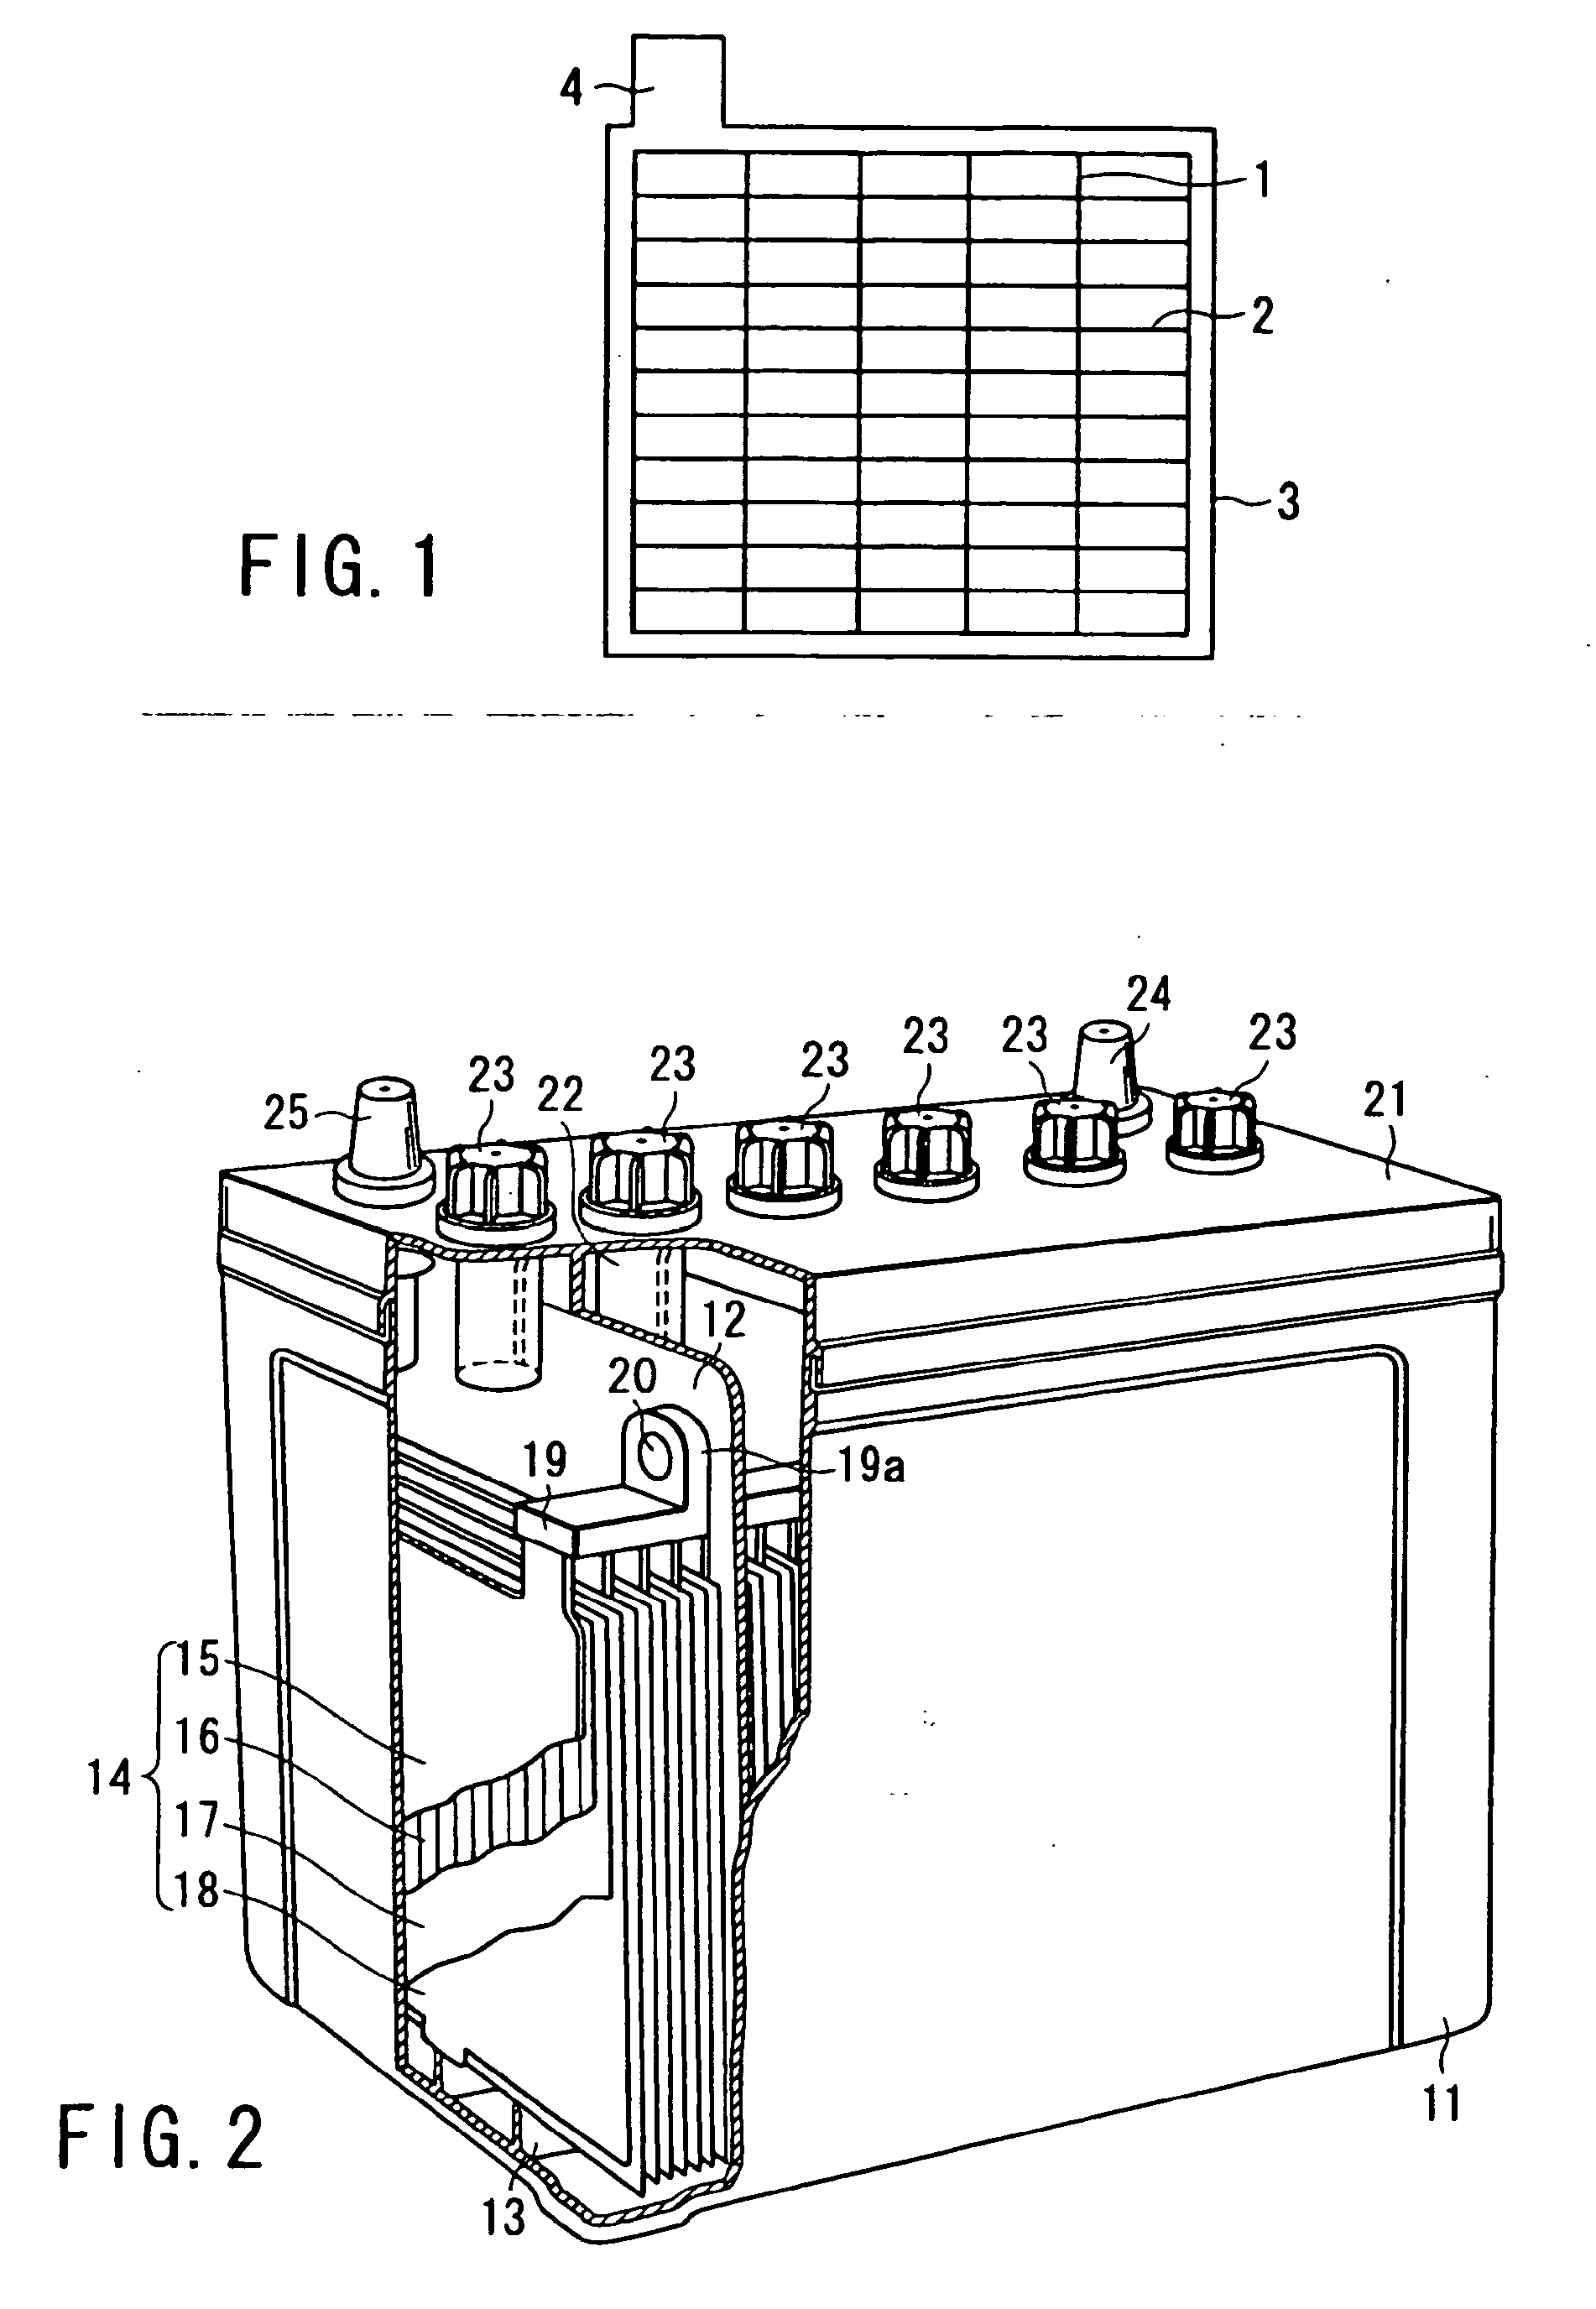 Construction of lead storage battery needs